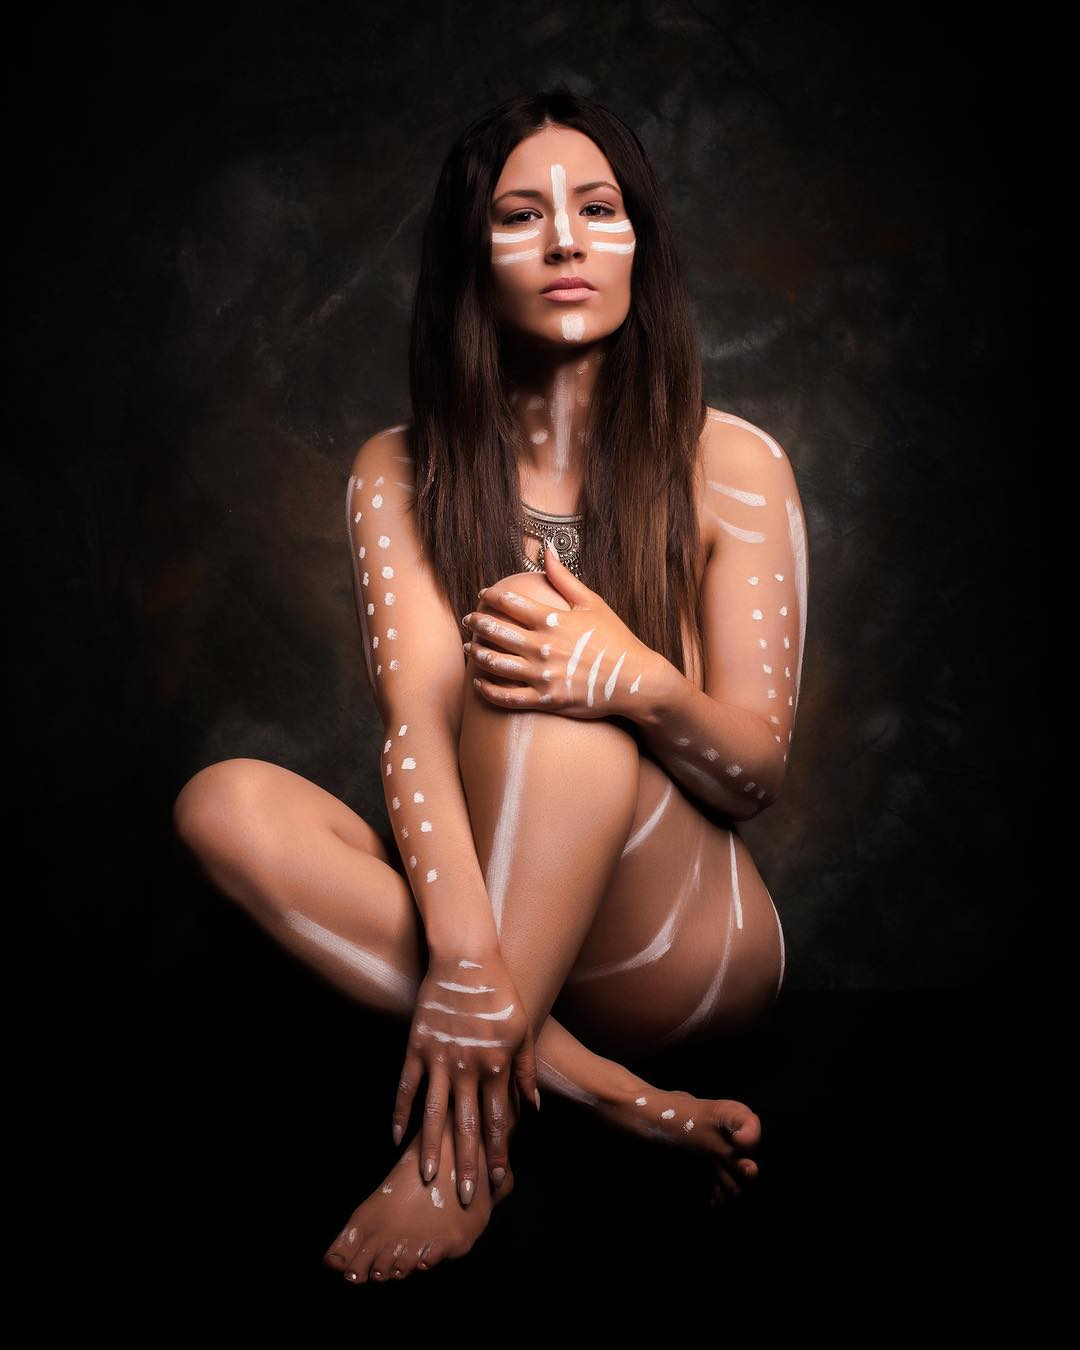 Semi nude photo of a woman in tribal paint